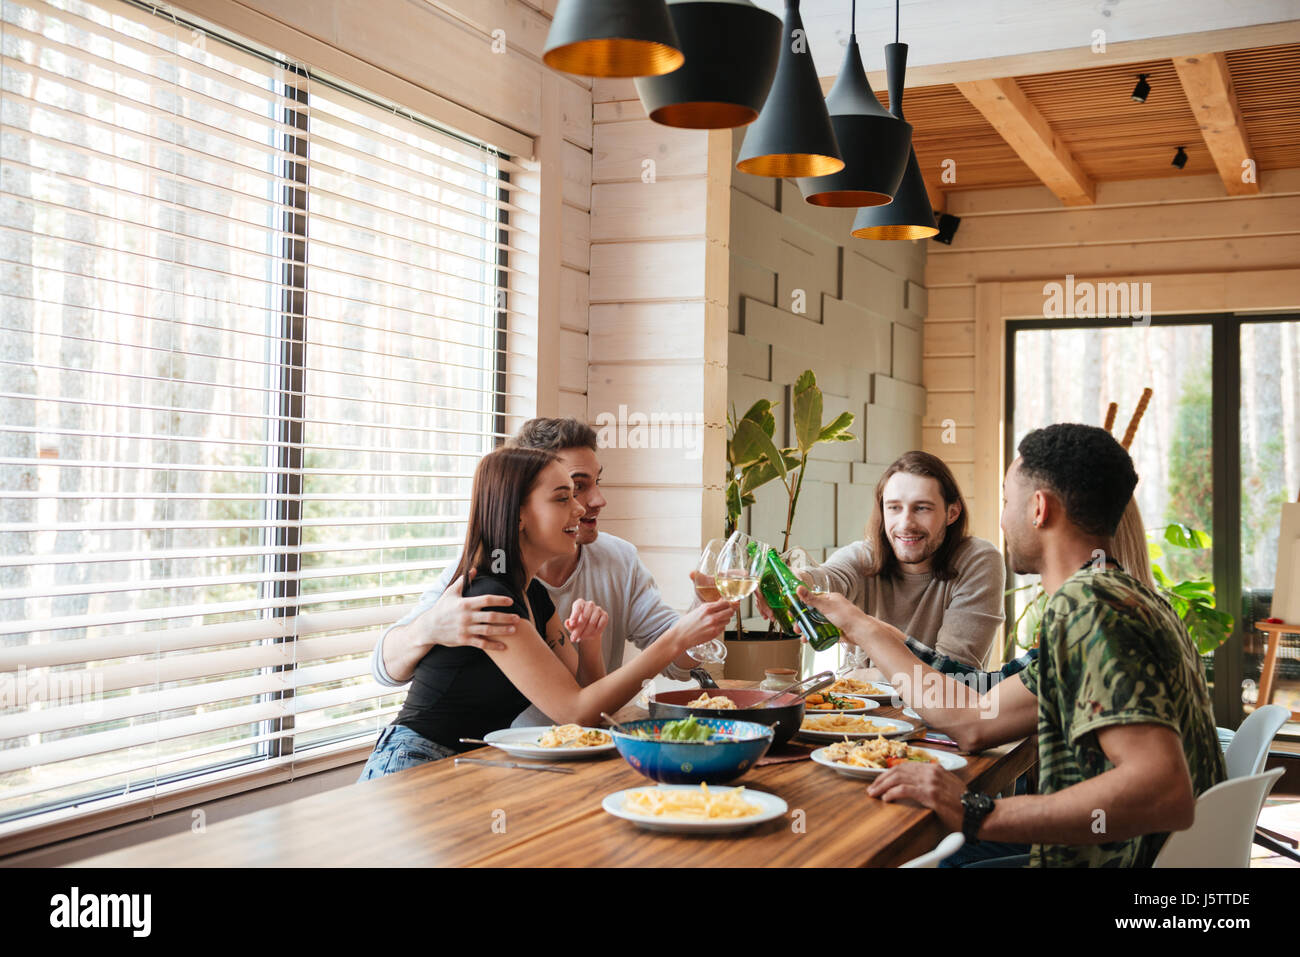 Group of cheerful young friends giving toasts and clinking glasses on the kitchen - Stock Image